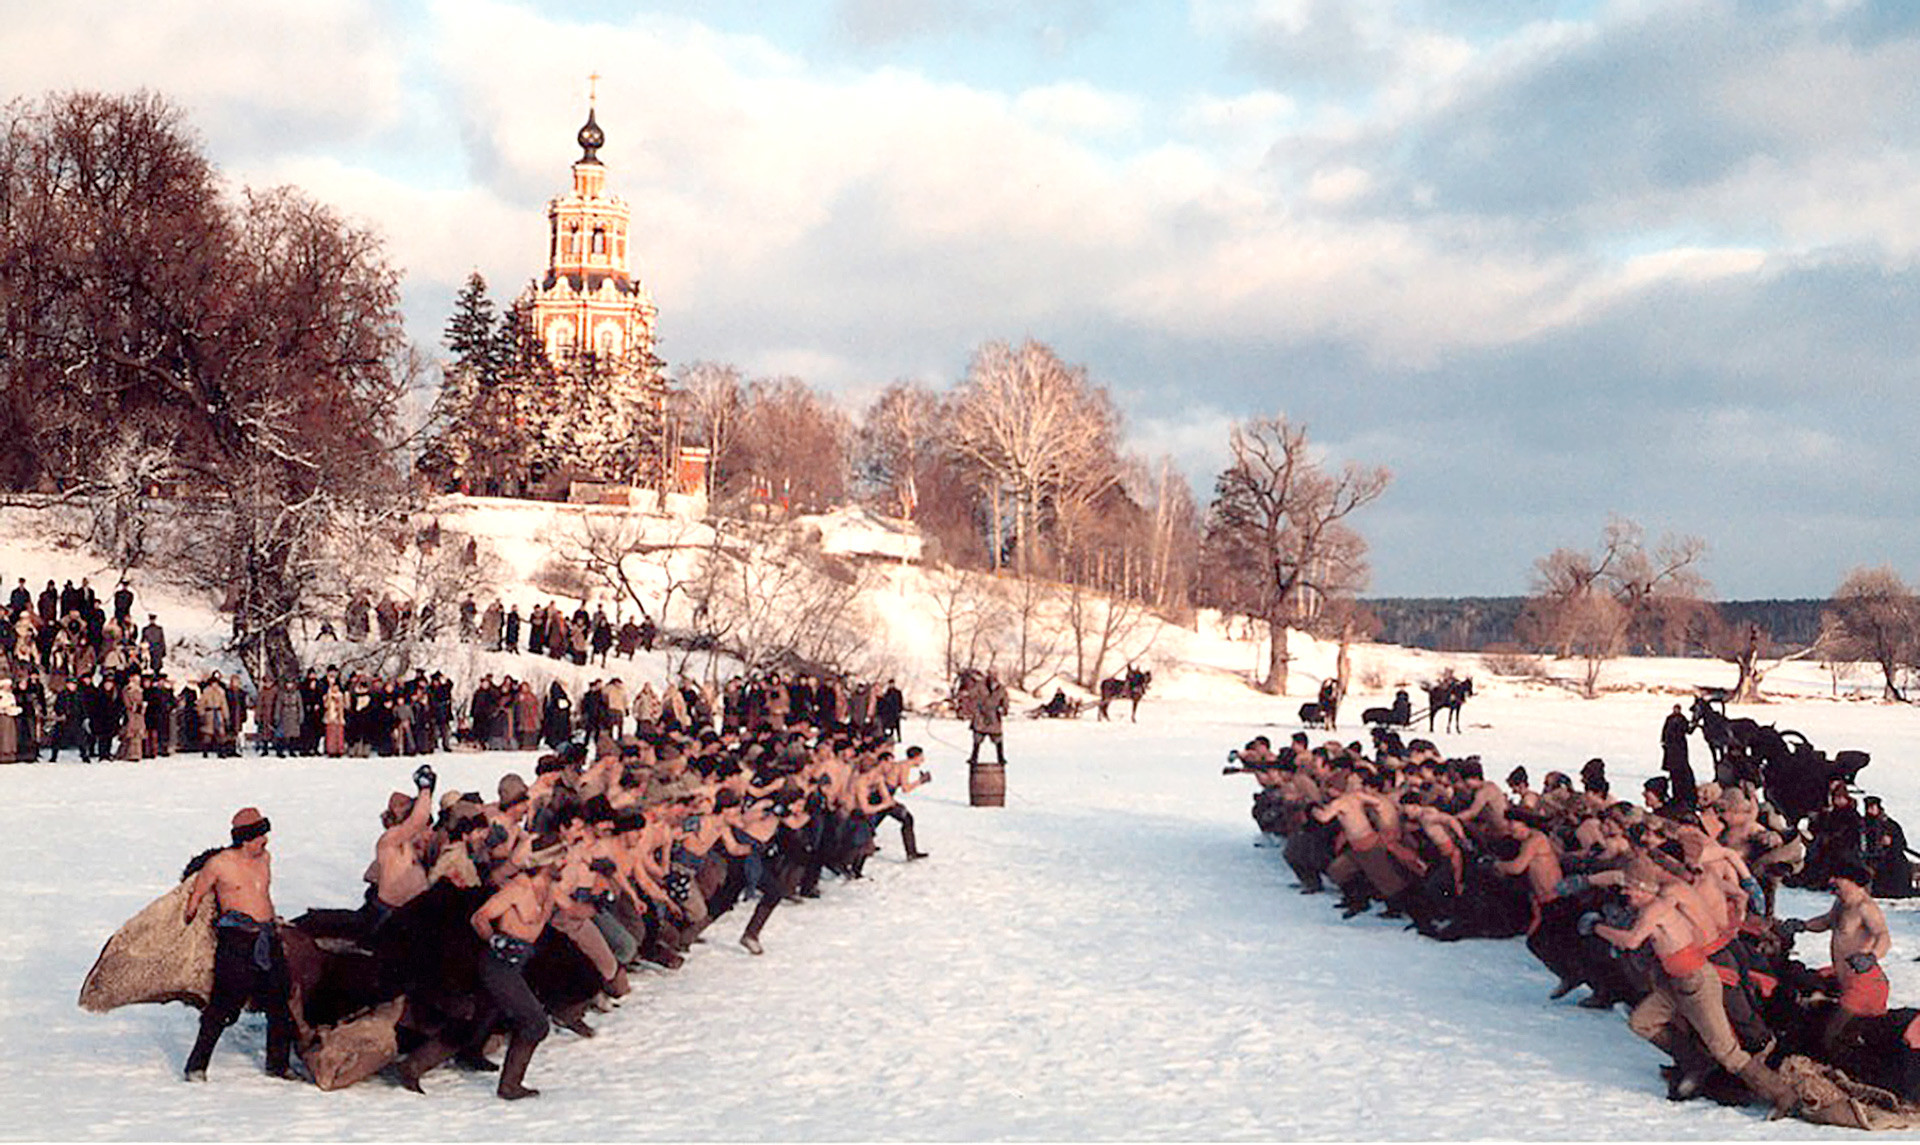 Russian fist fight as shown in the movie